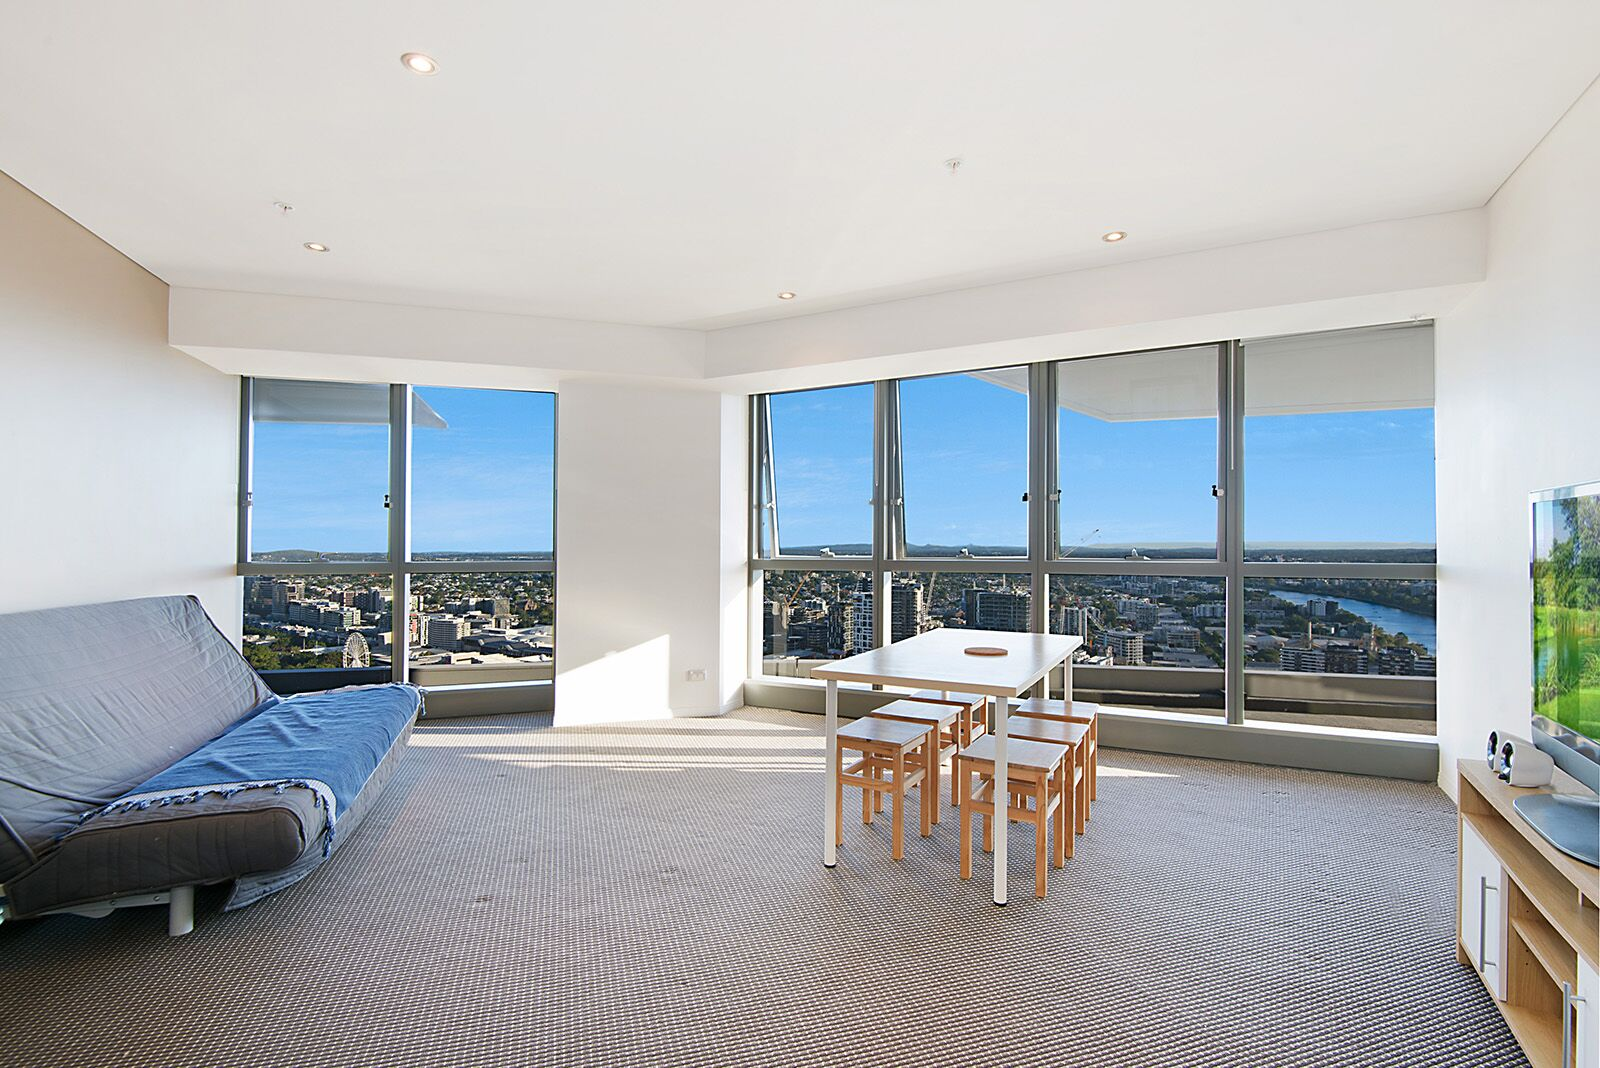 2 Bedroom Apartment Brisbane 3601 43 Herschel Street Brisbane City 4000 Sold 2 Bedroom